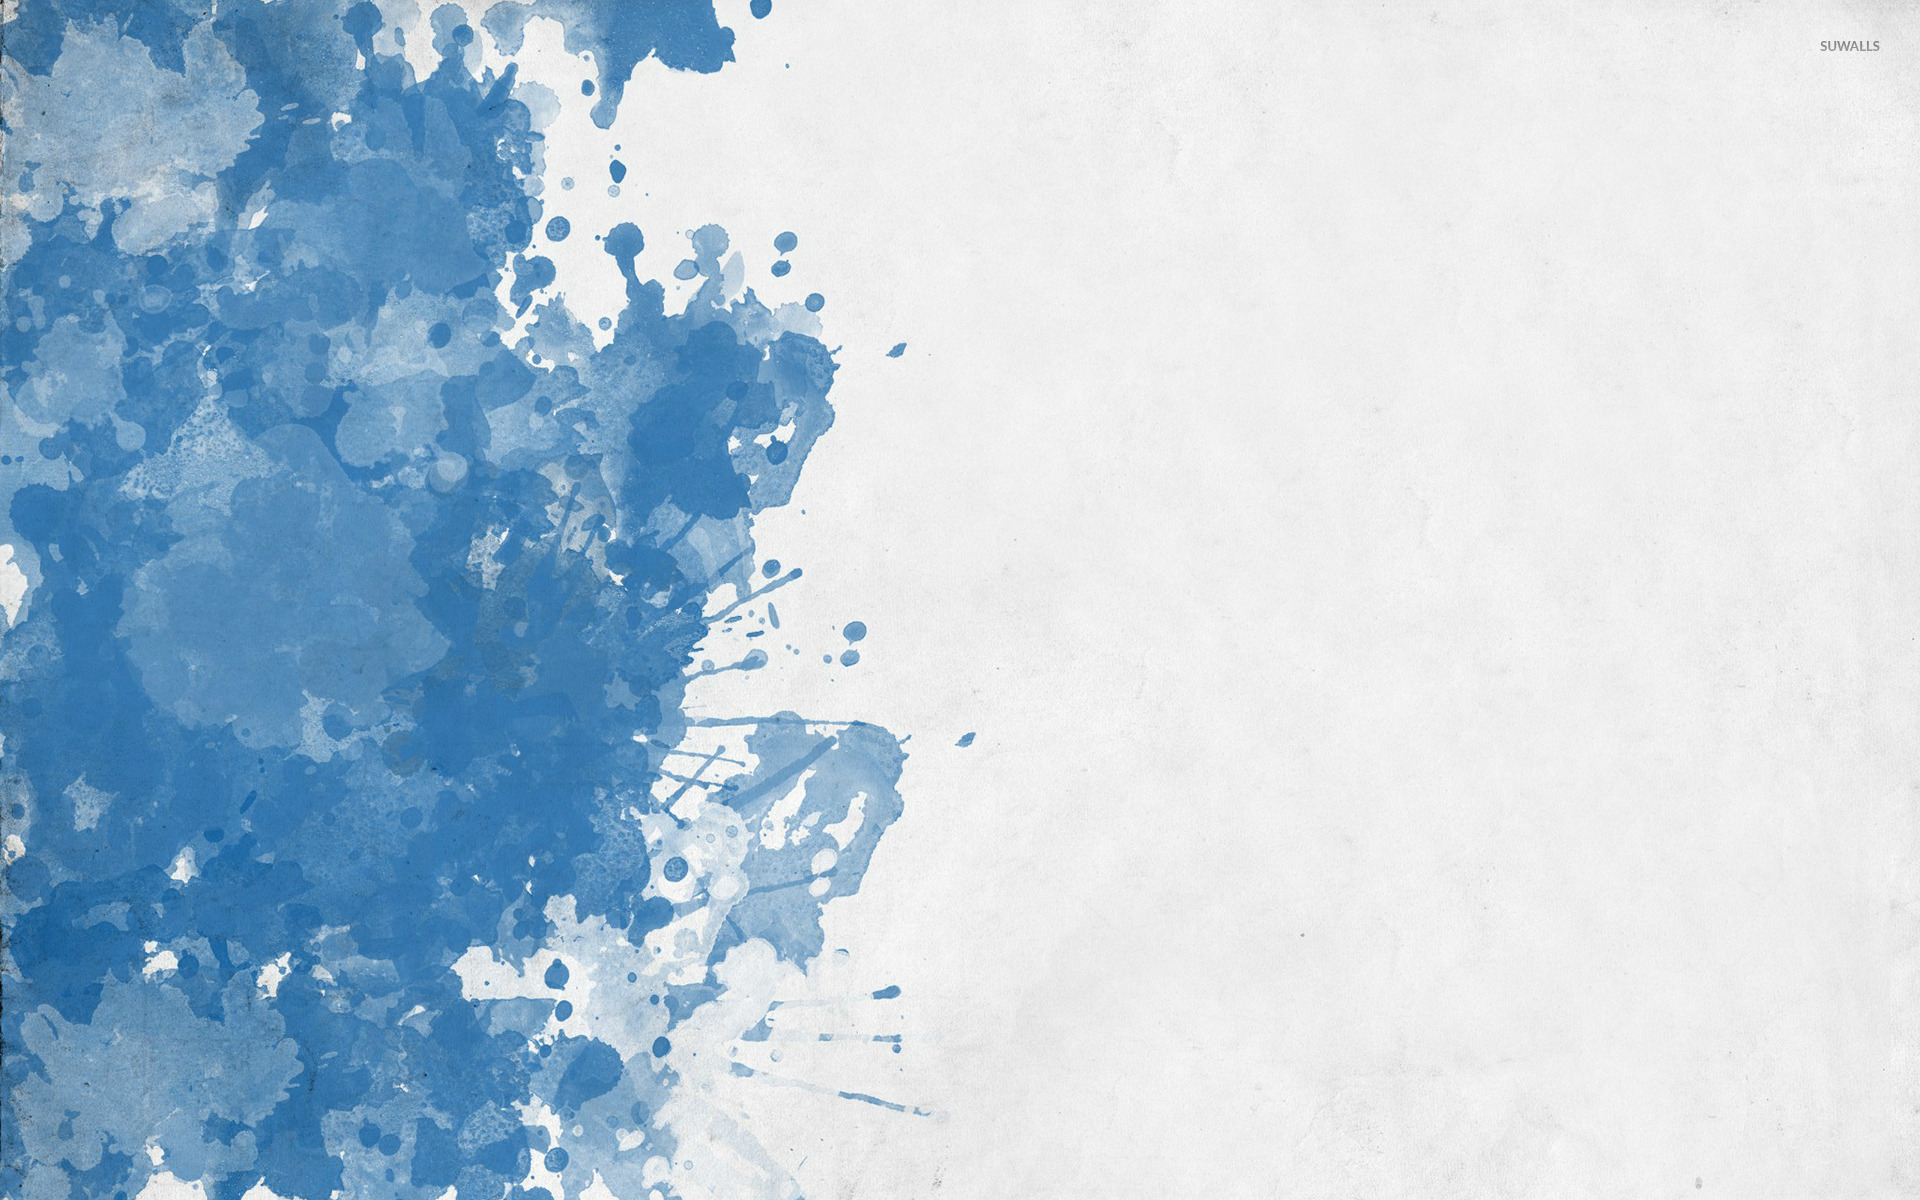 Blue splash wallpaper - Abstract wallpapers - #40777